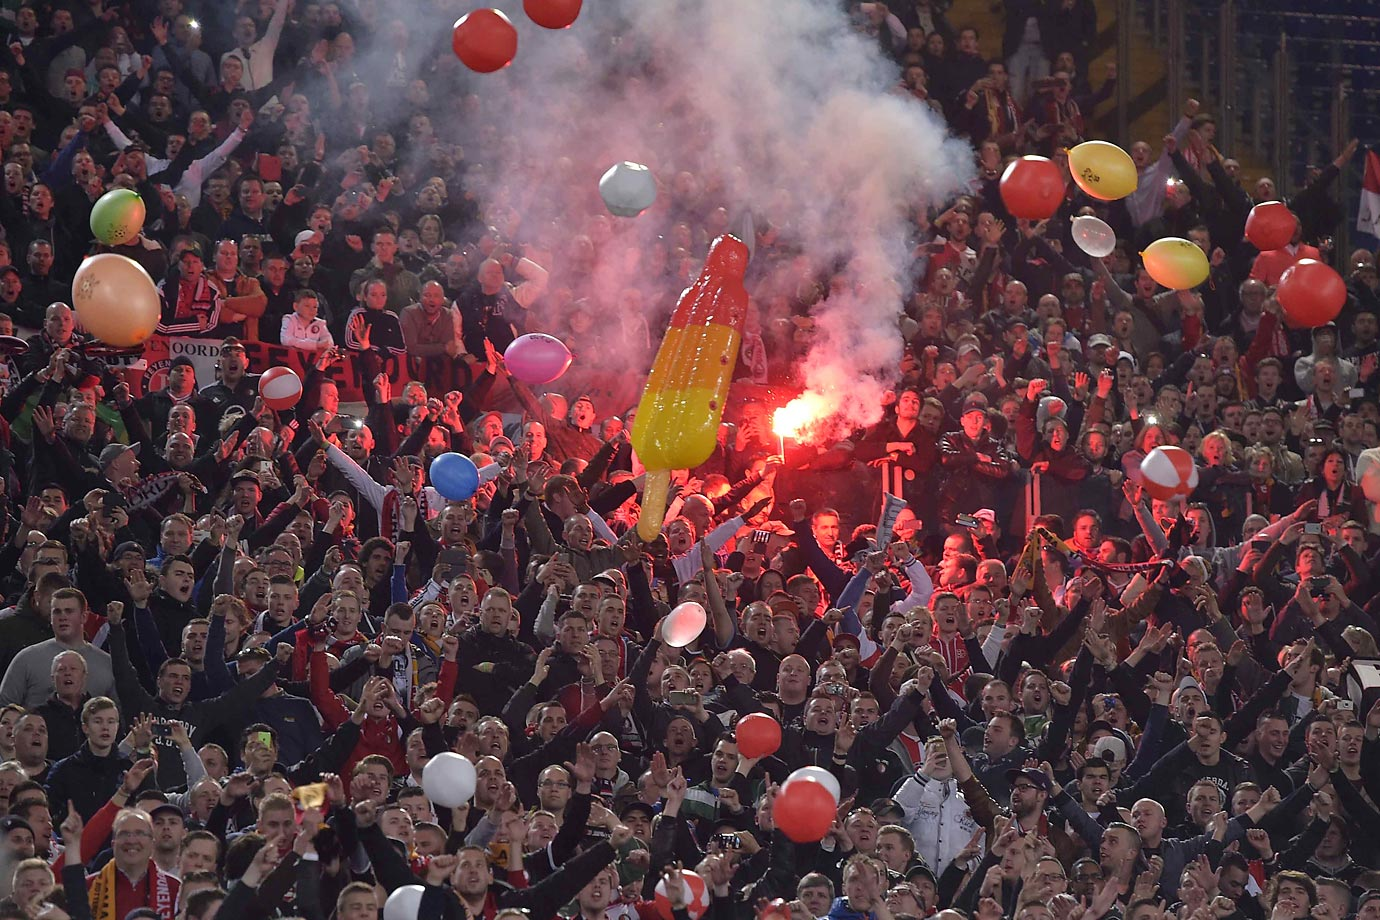 Balloons, fire, what else could you ask for at the UEFA Europa League                           Sport Soccer game between Roma and Feyenoord.